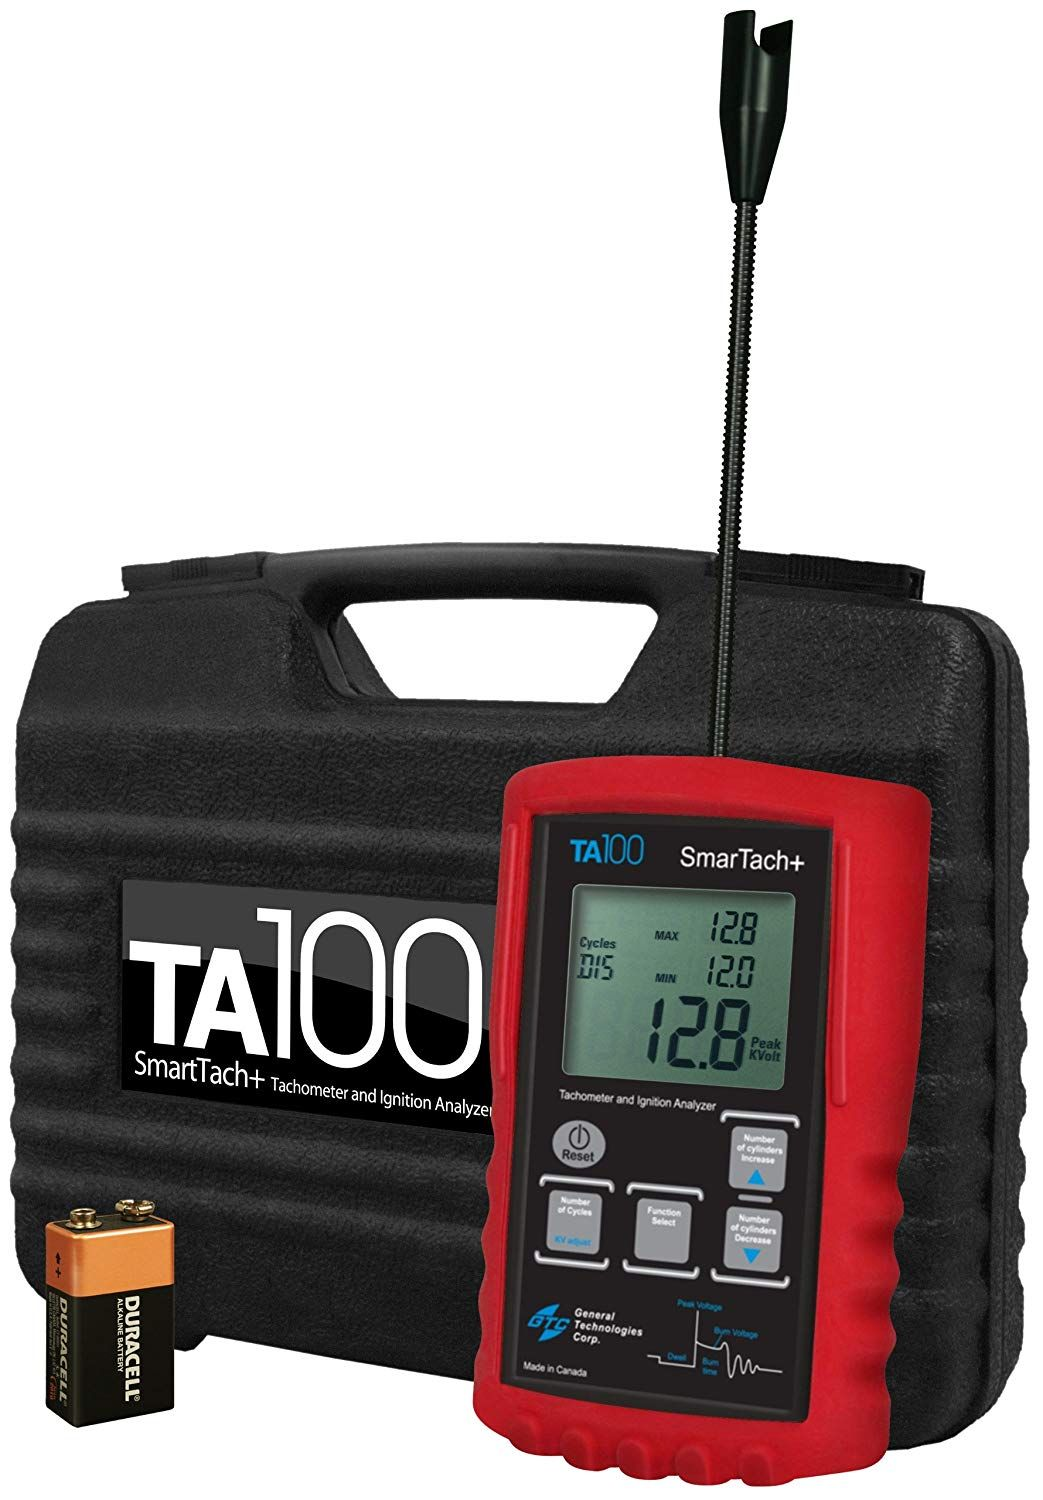 general technologies corp gtc ta100 smartach wireless ignition analyzer and tachometer read more at the image link this is an affiliate link  [ 1043 x 1500 Pixel ]